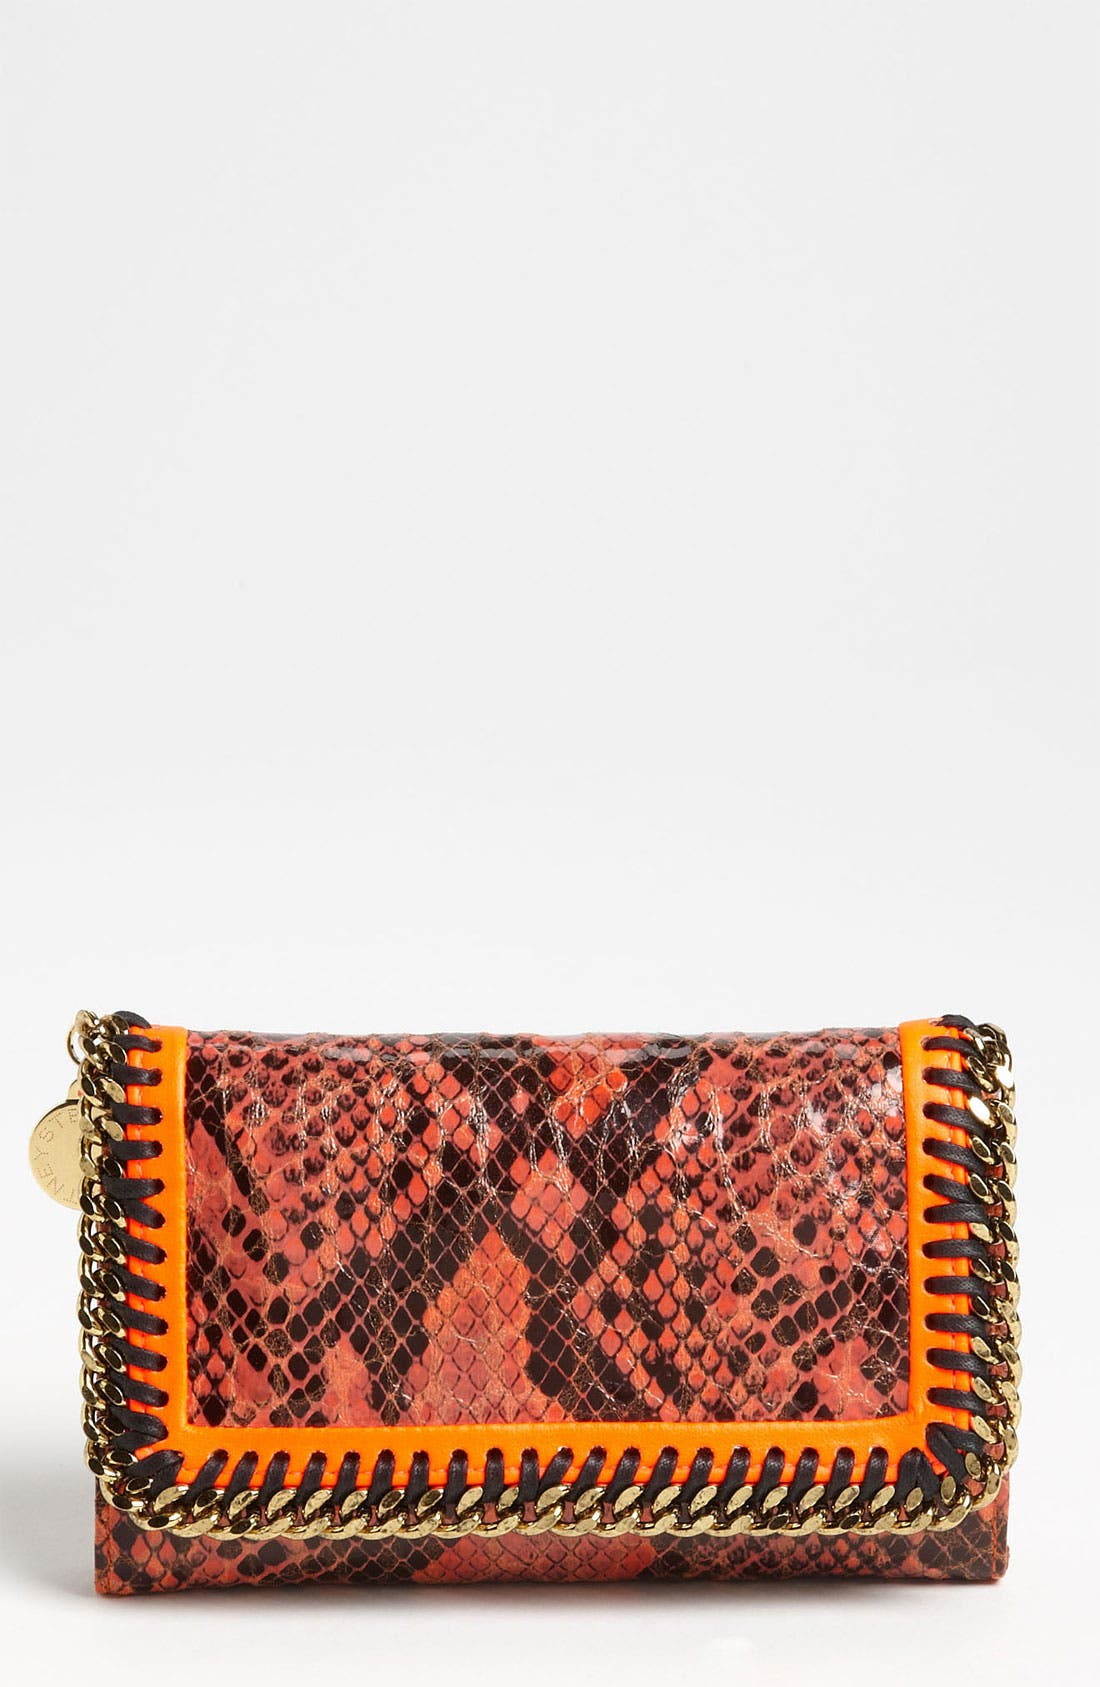 Alternate Image 1 Selected - Stella McCartney 'Falabella' Faux Python Wallet